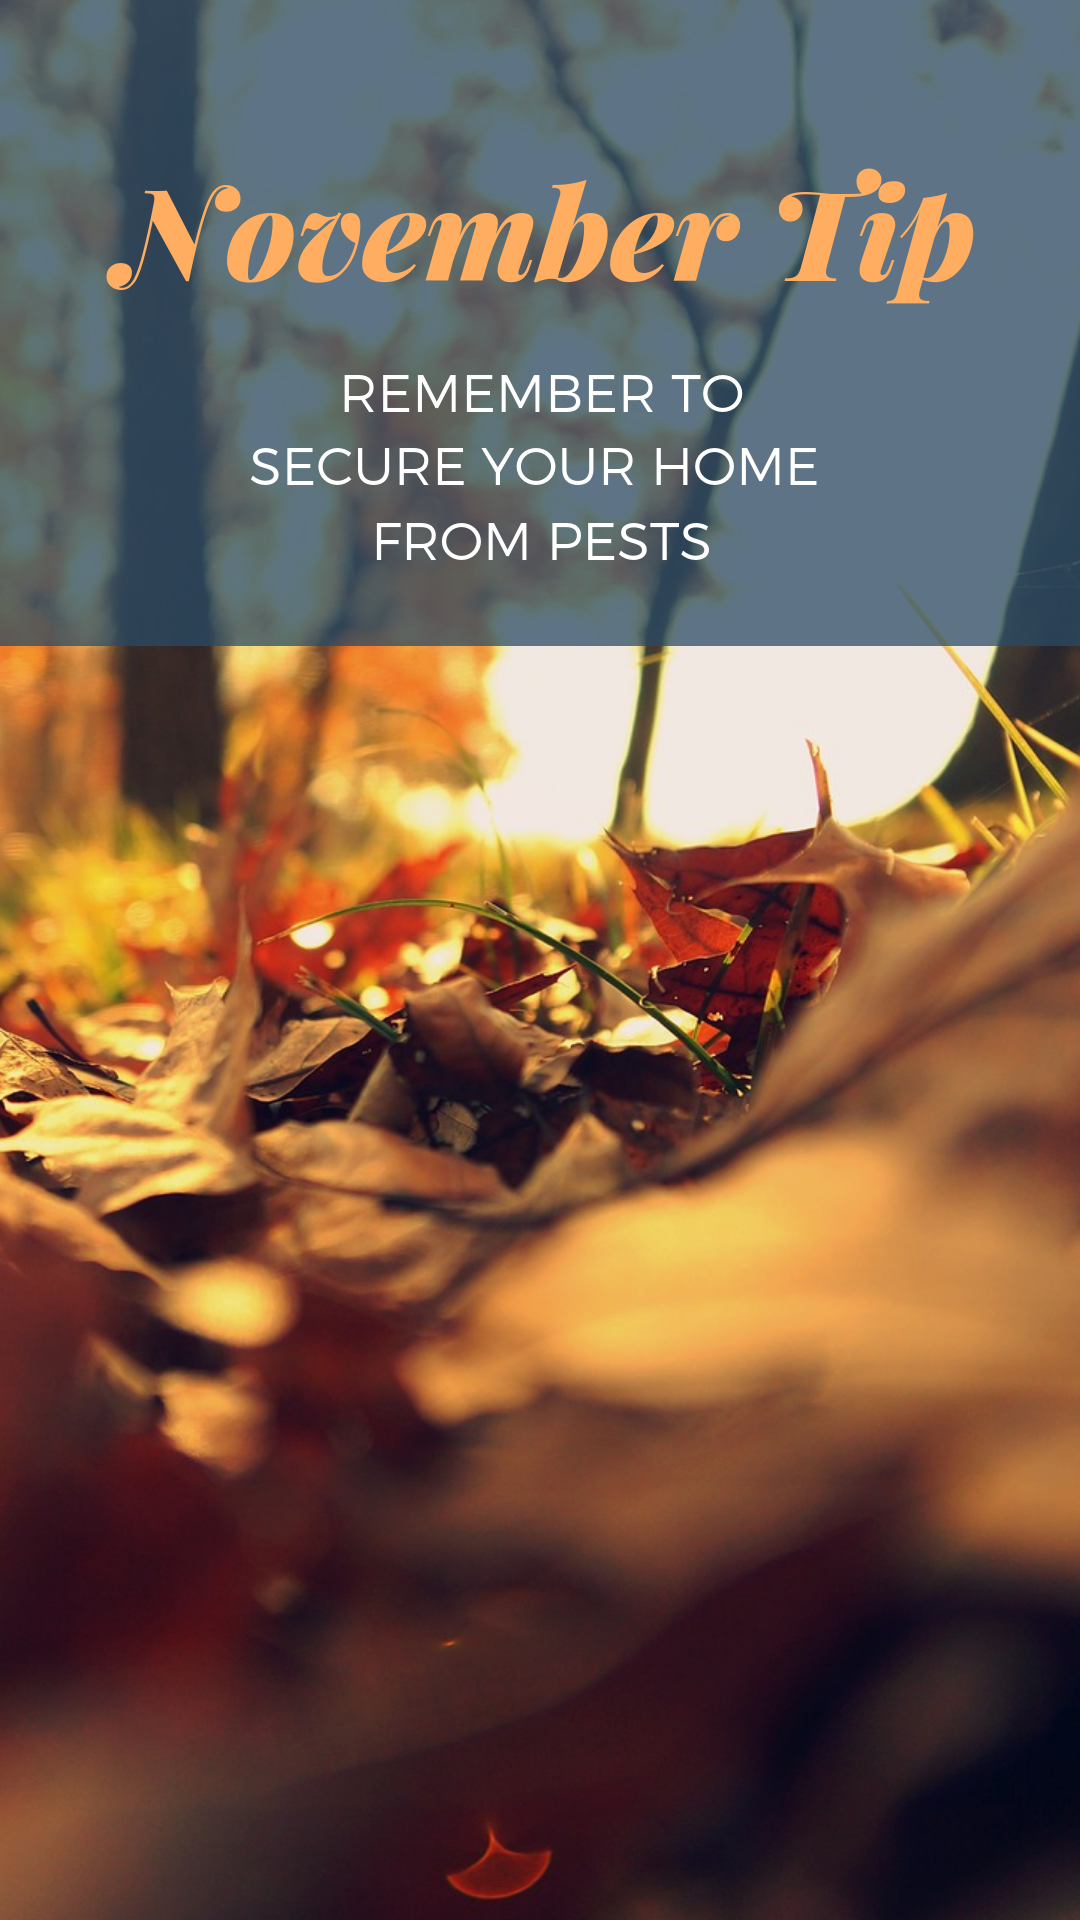 November home maintenance tips from Live in MT Real Estate Keep mice and snakes out of your home